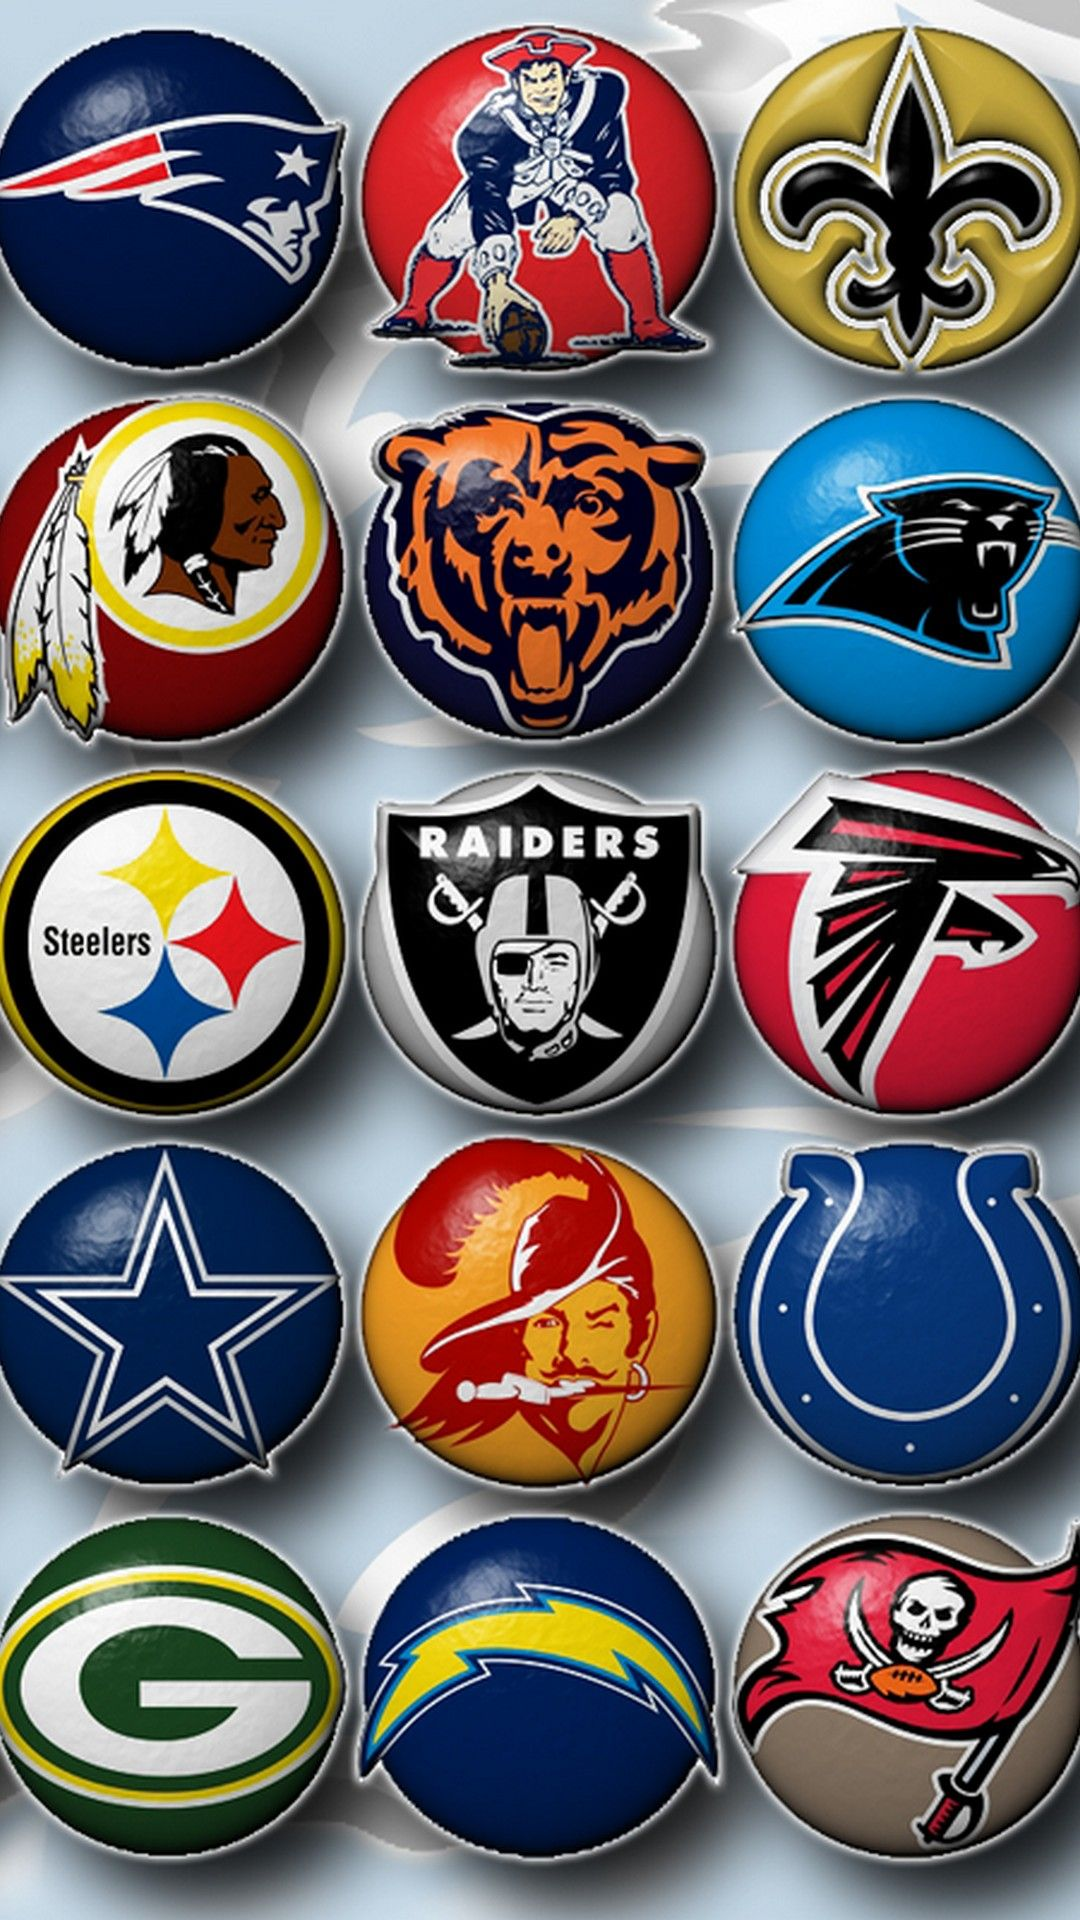 NFL Wallpaper iPhone HD (With images) Nfl football